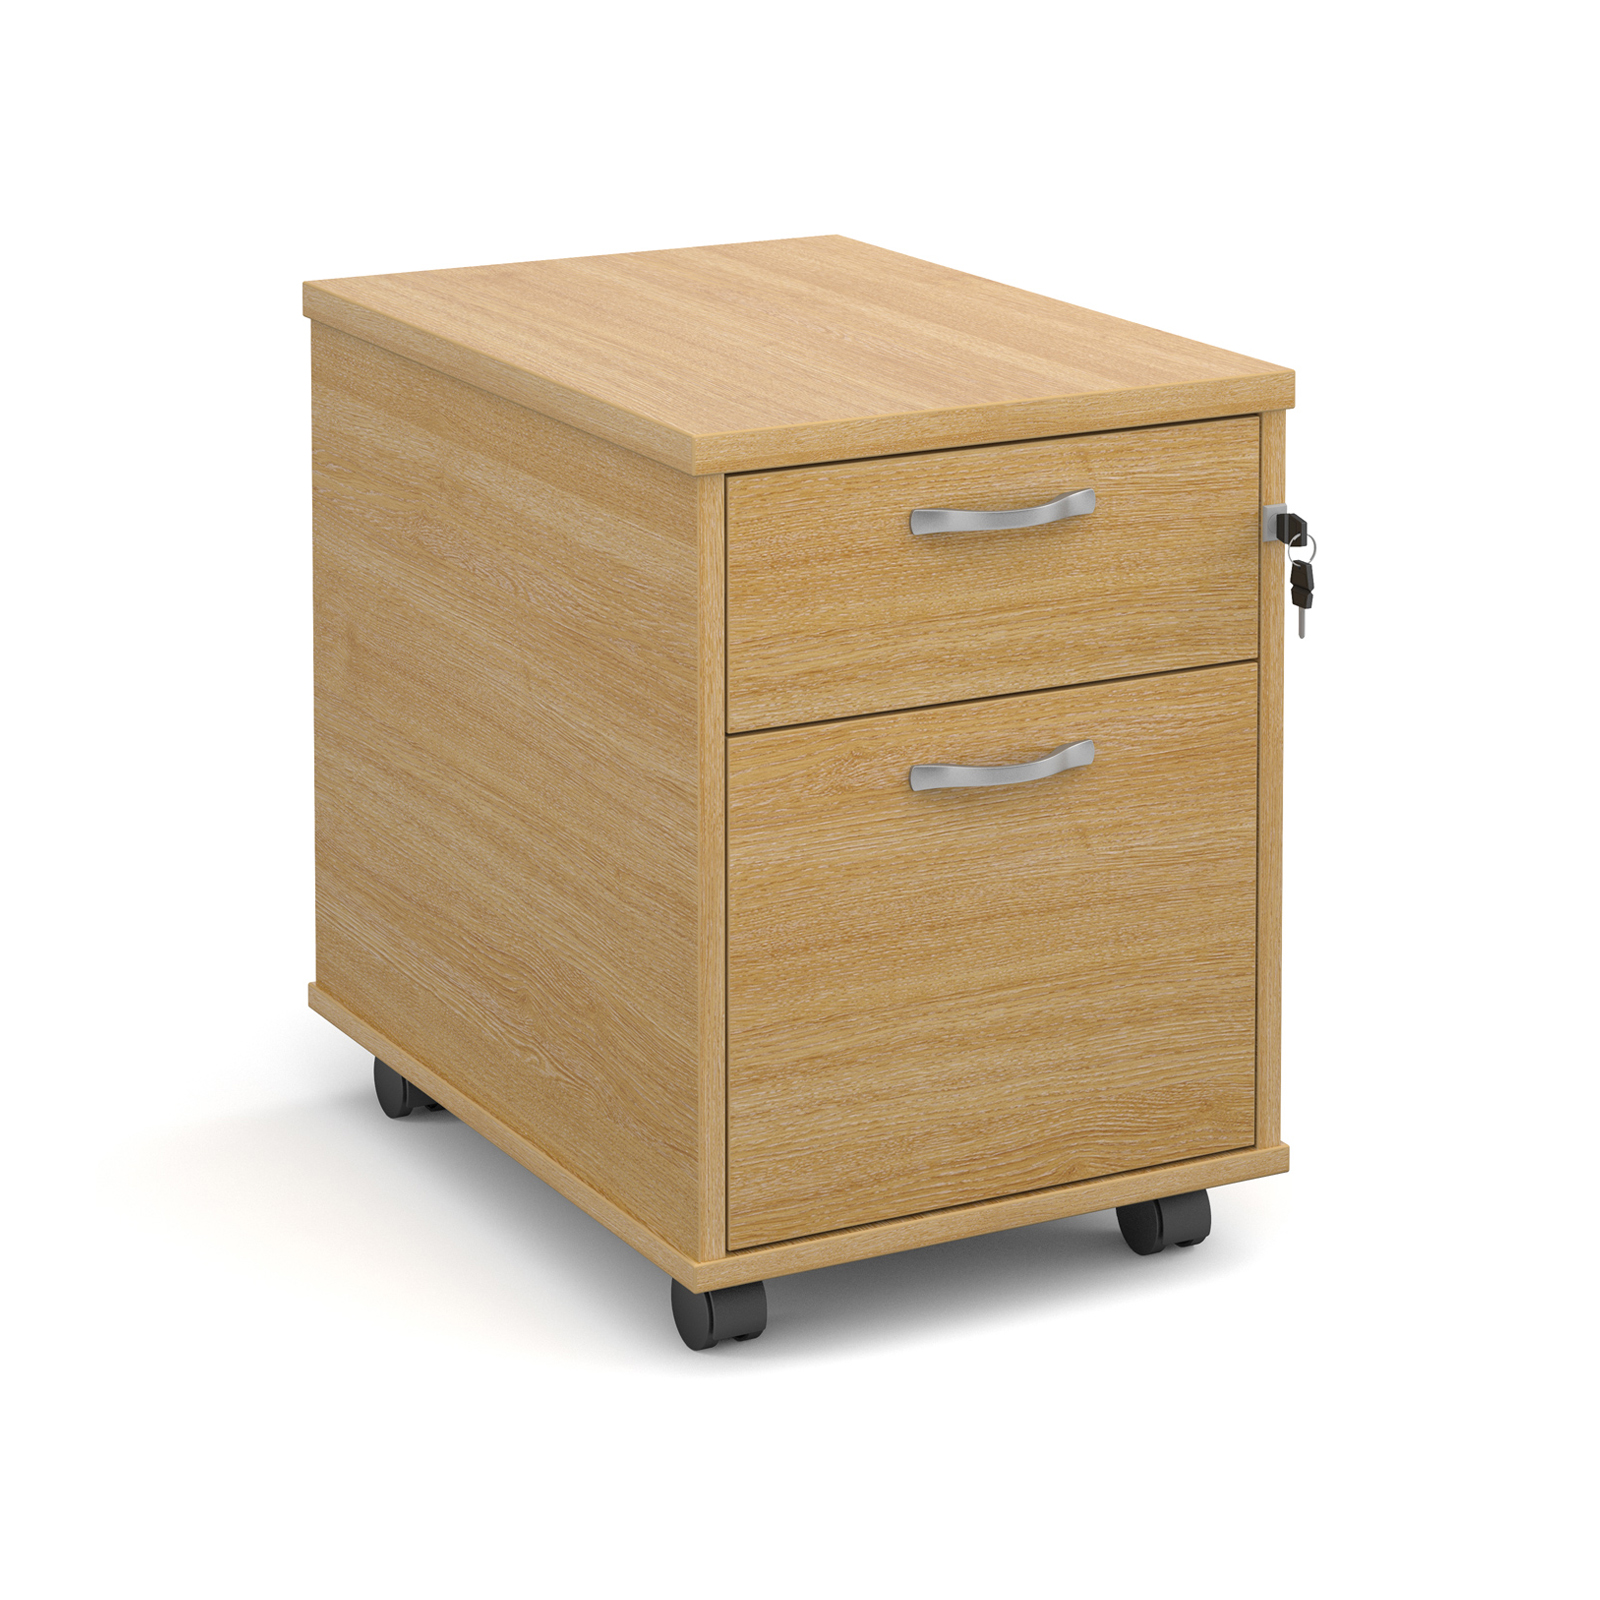 2 Drawer Mobile 2 drawer pedestal with silver handles 600mm deep - oak